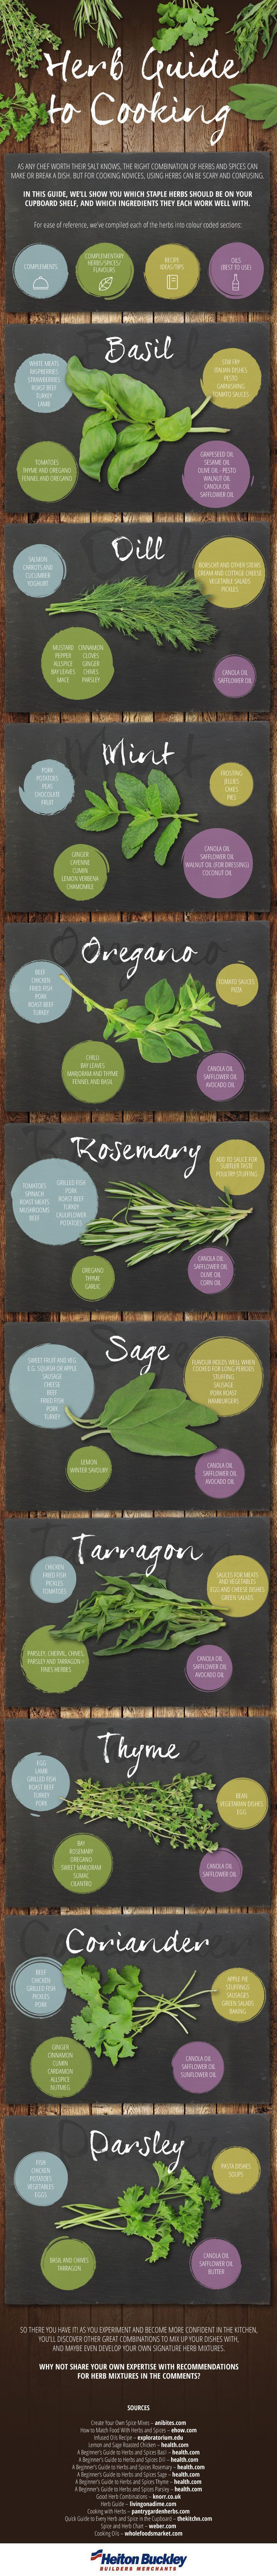 Confused about when to break out the basil and when to reach for the rosemary? This infographic breaks it all down for you.